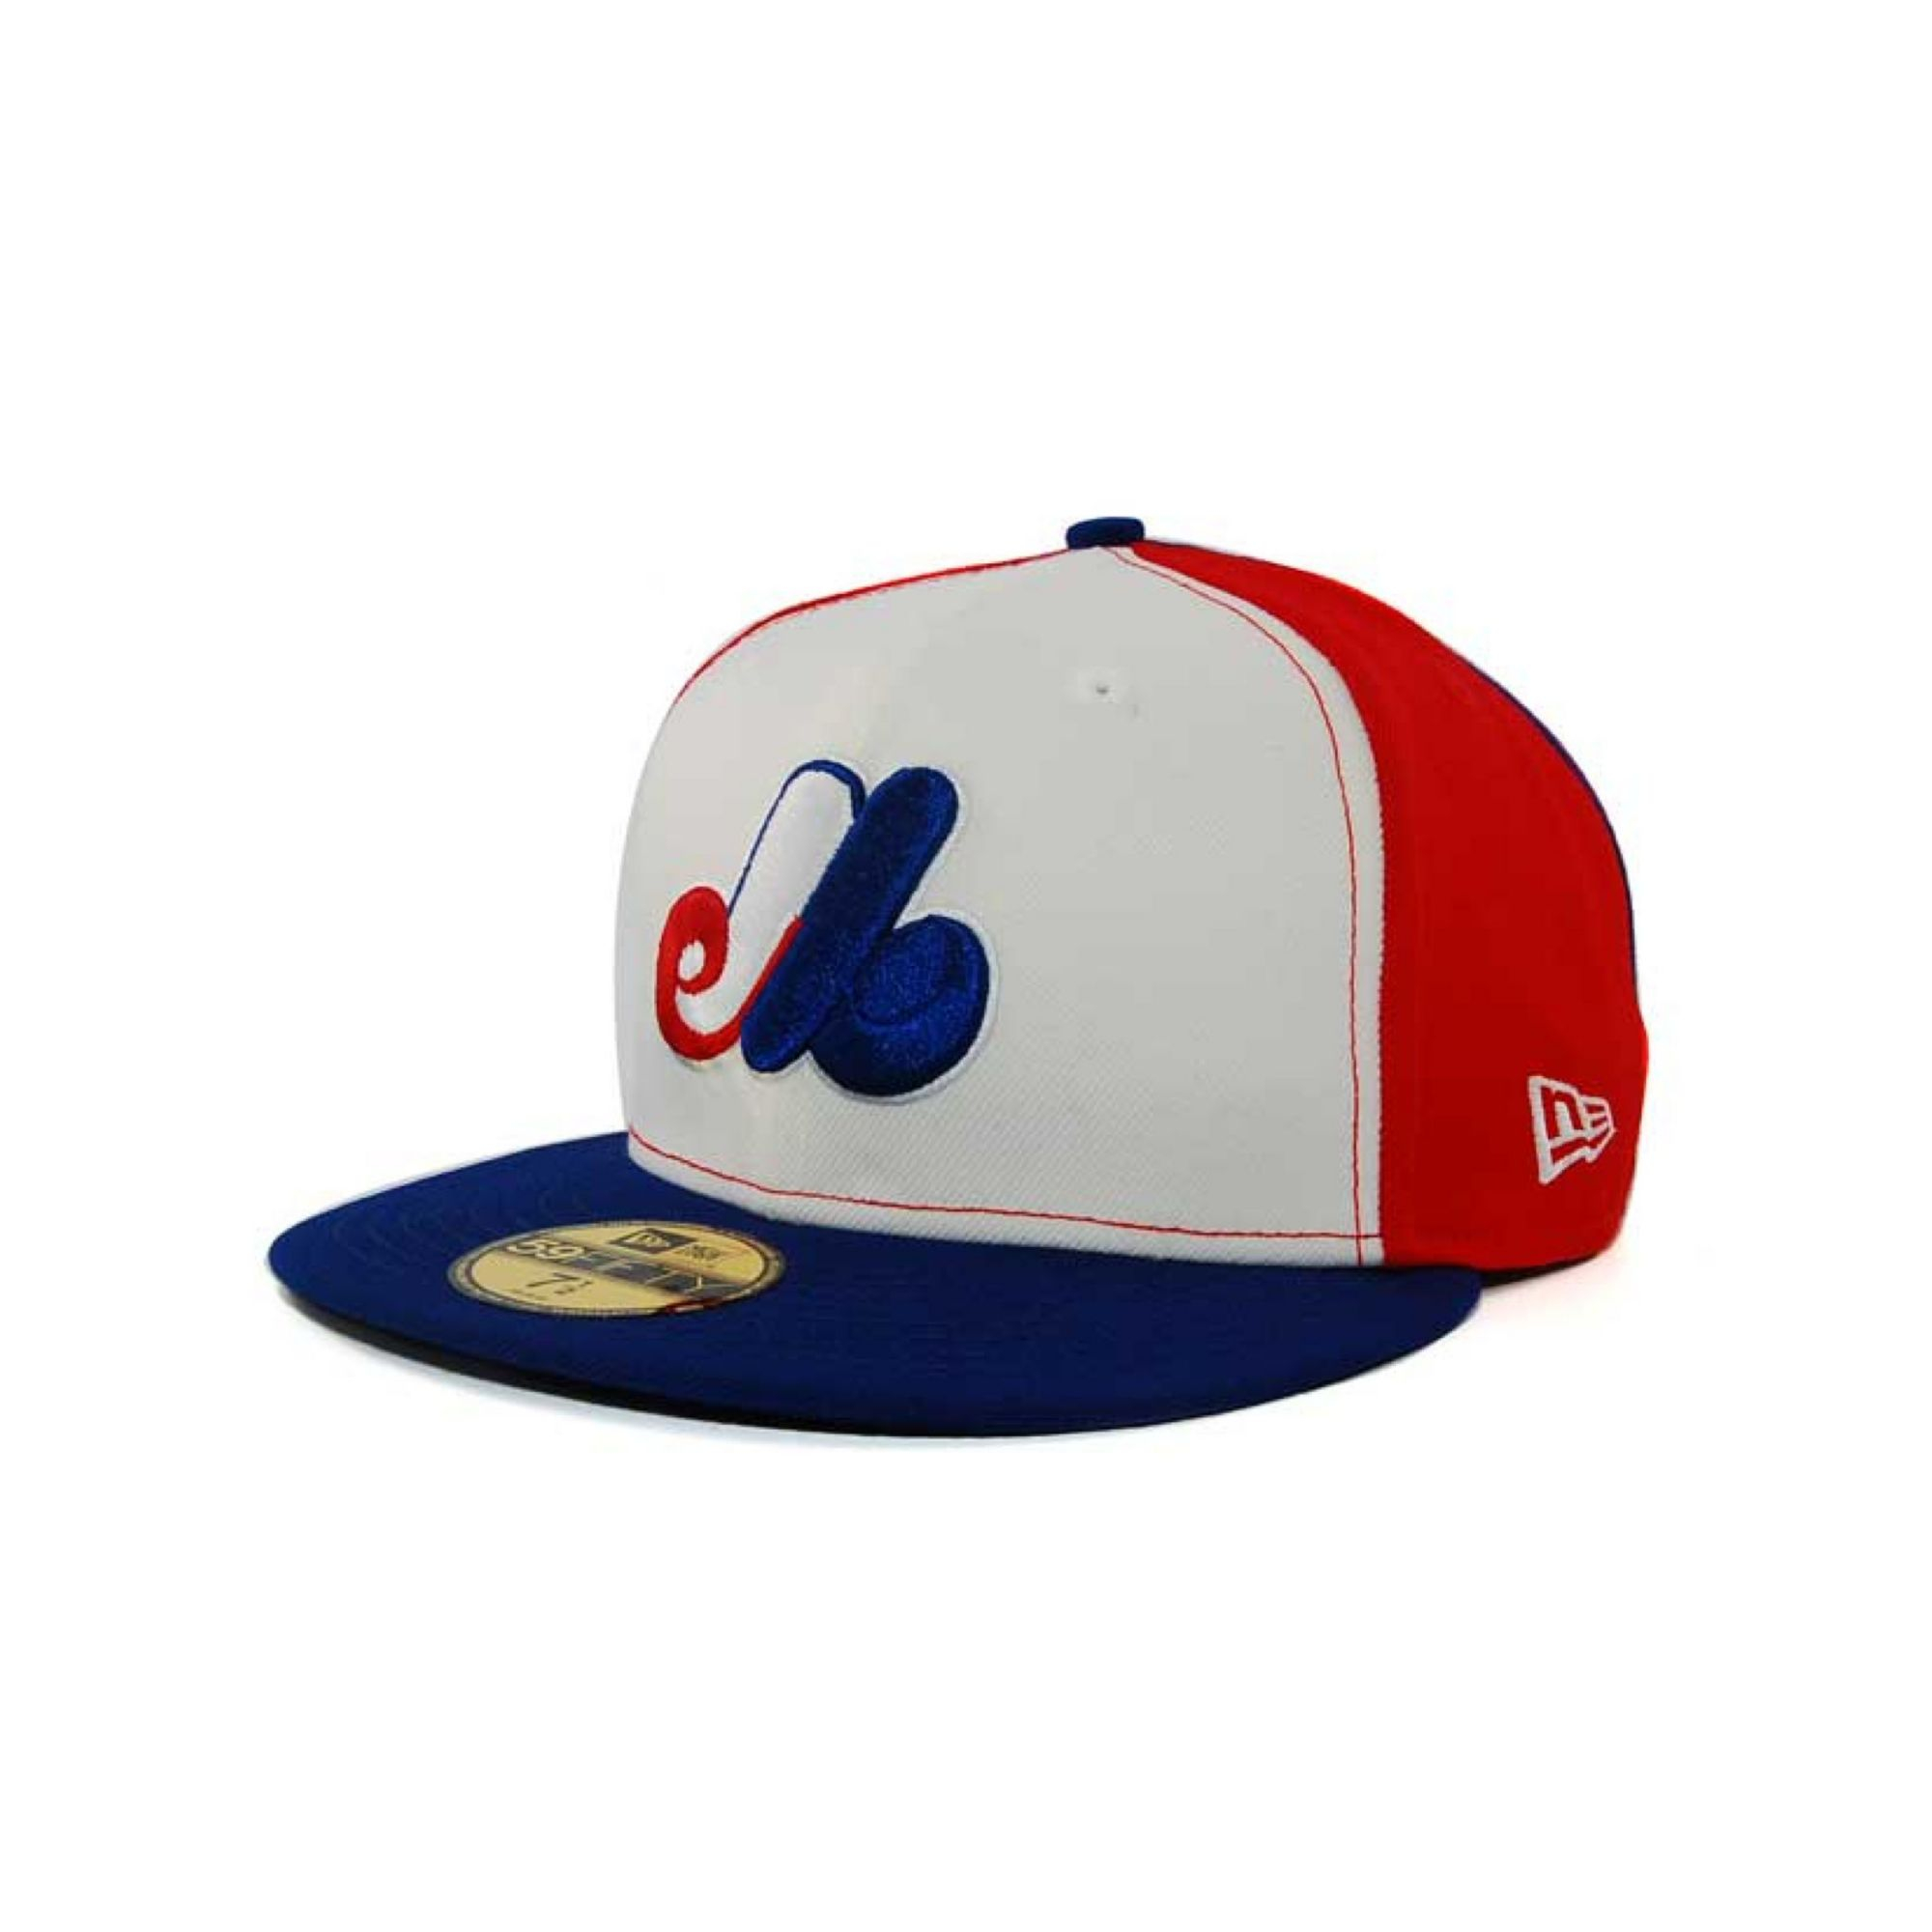 cheaper 3e6f0 a21f9 ... amazon lyst ktz montreal expos cooperstown 59fifty cap in red for men  b9db2 34b56